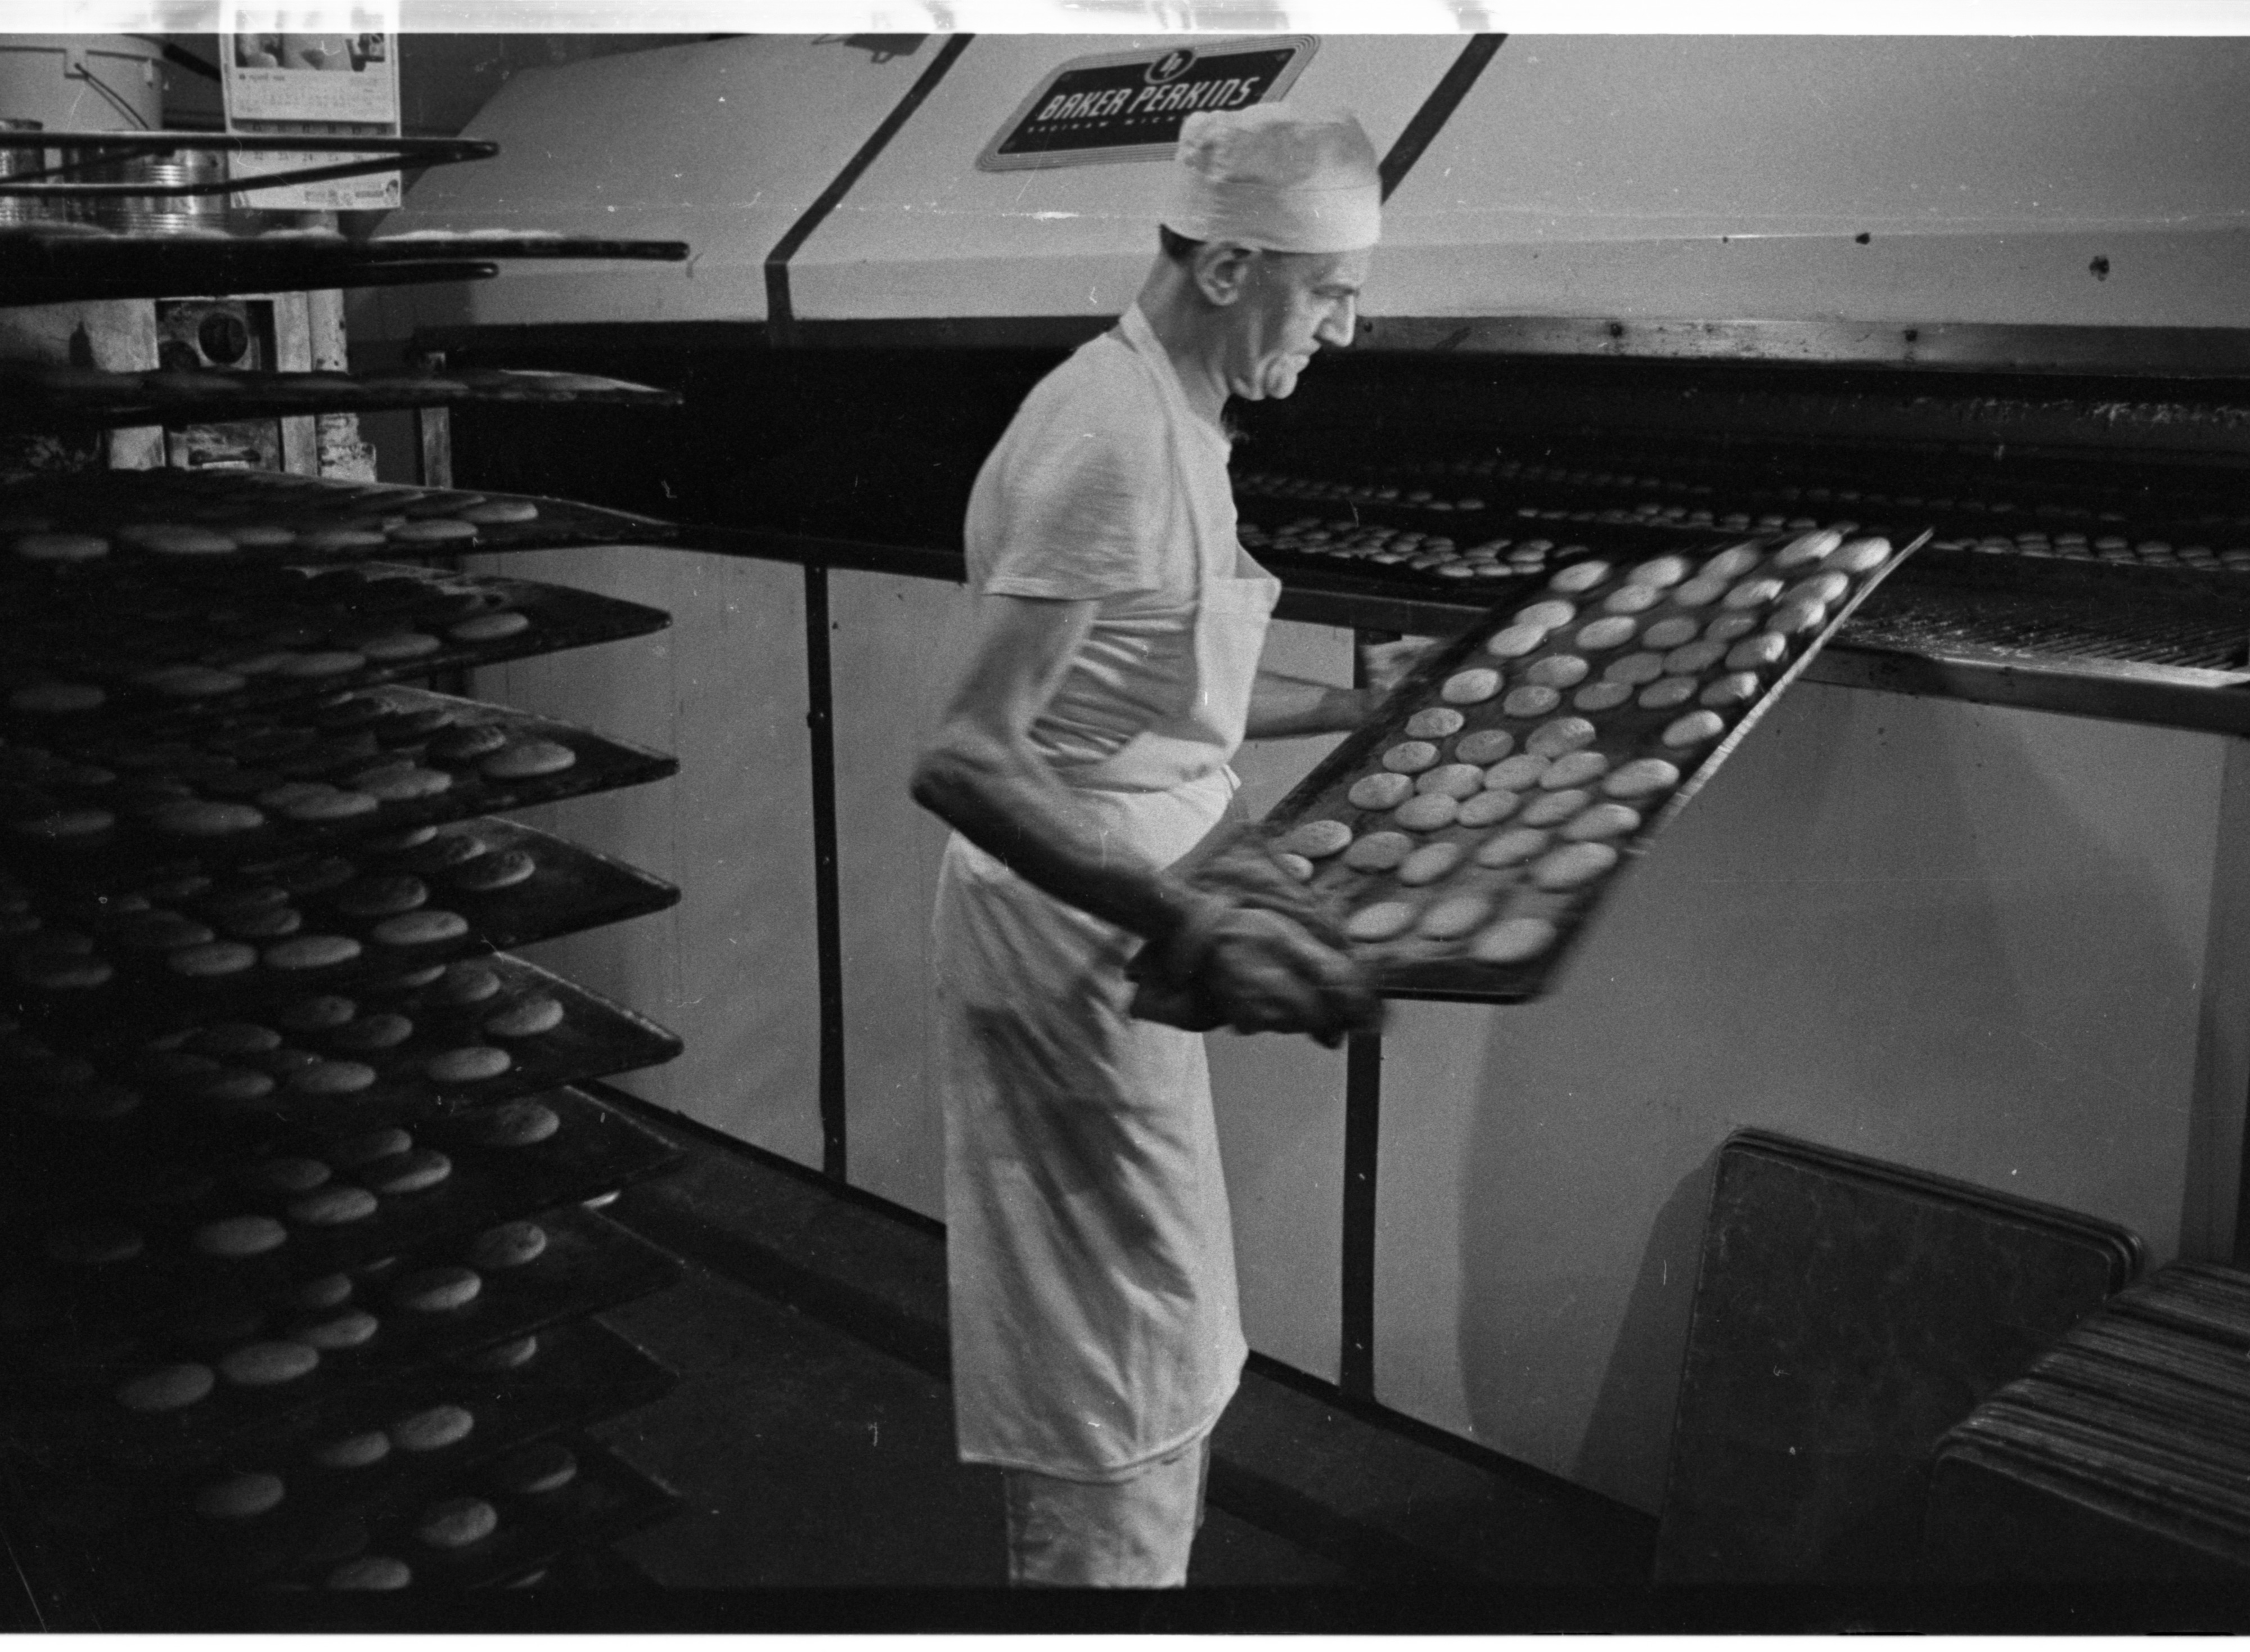 Into the Ovens at Quality Bakery, April 1974 image